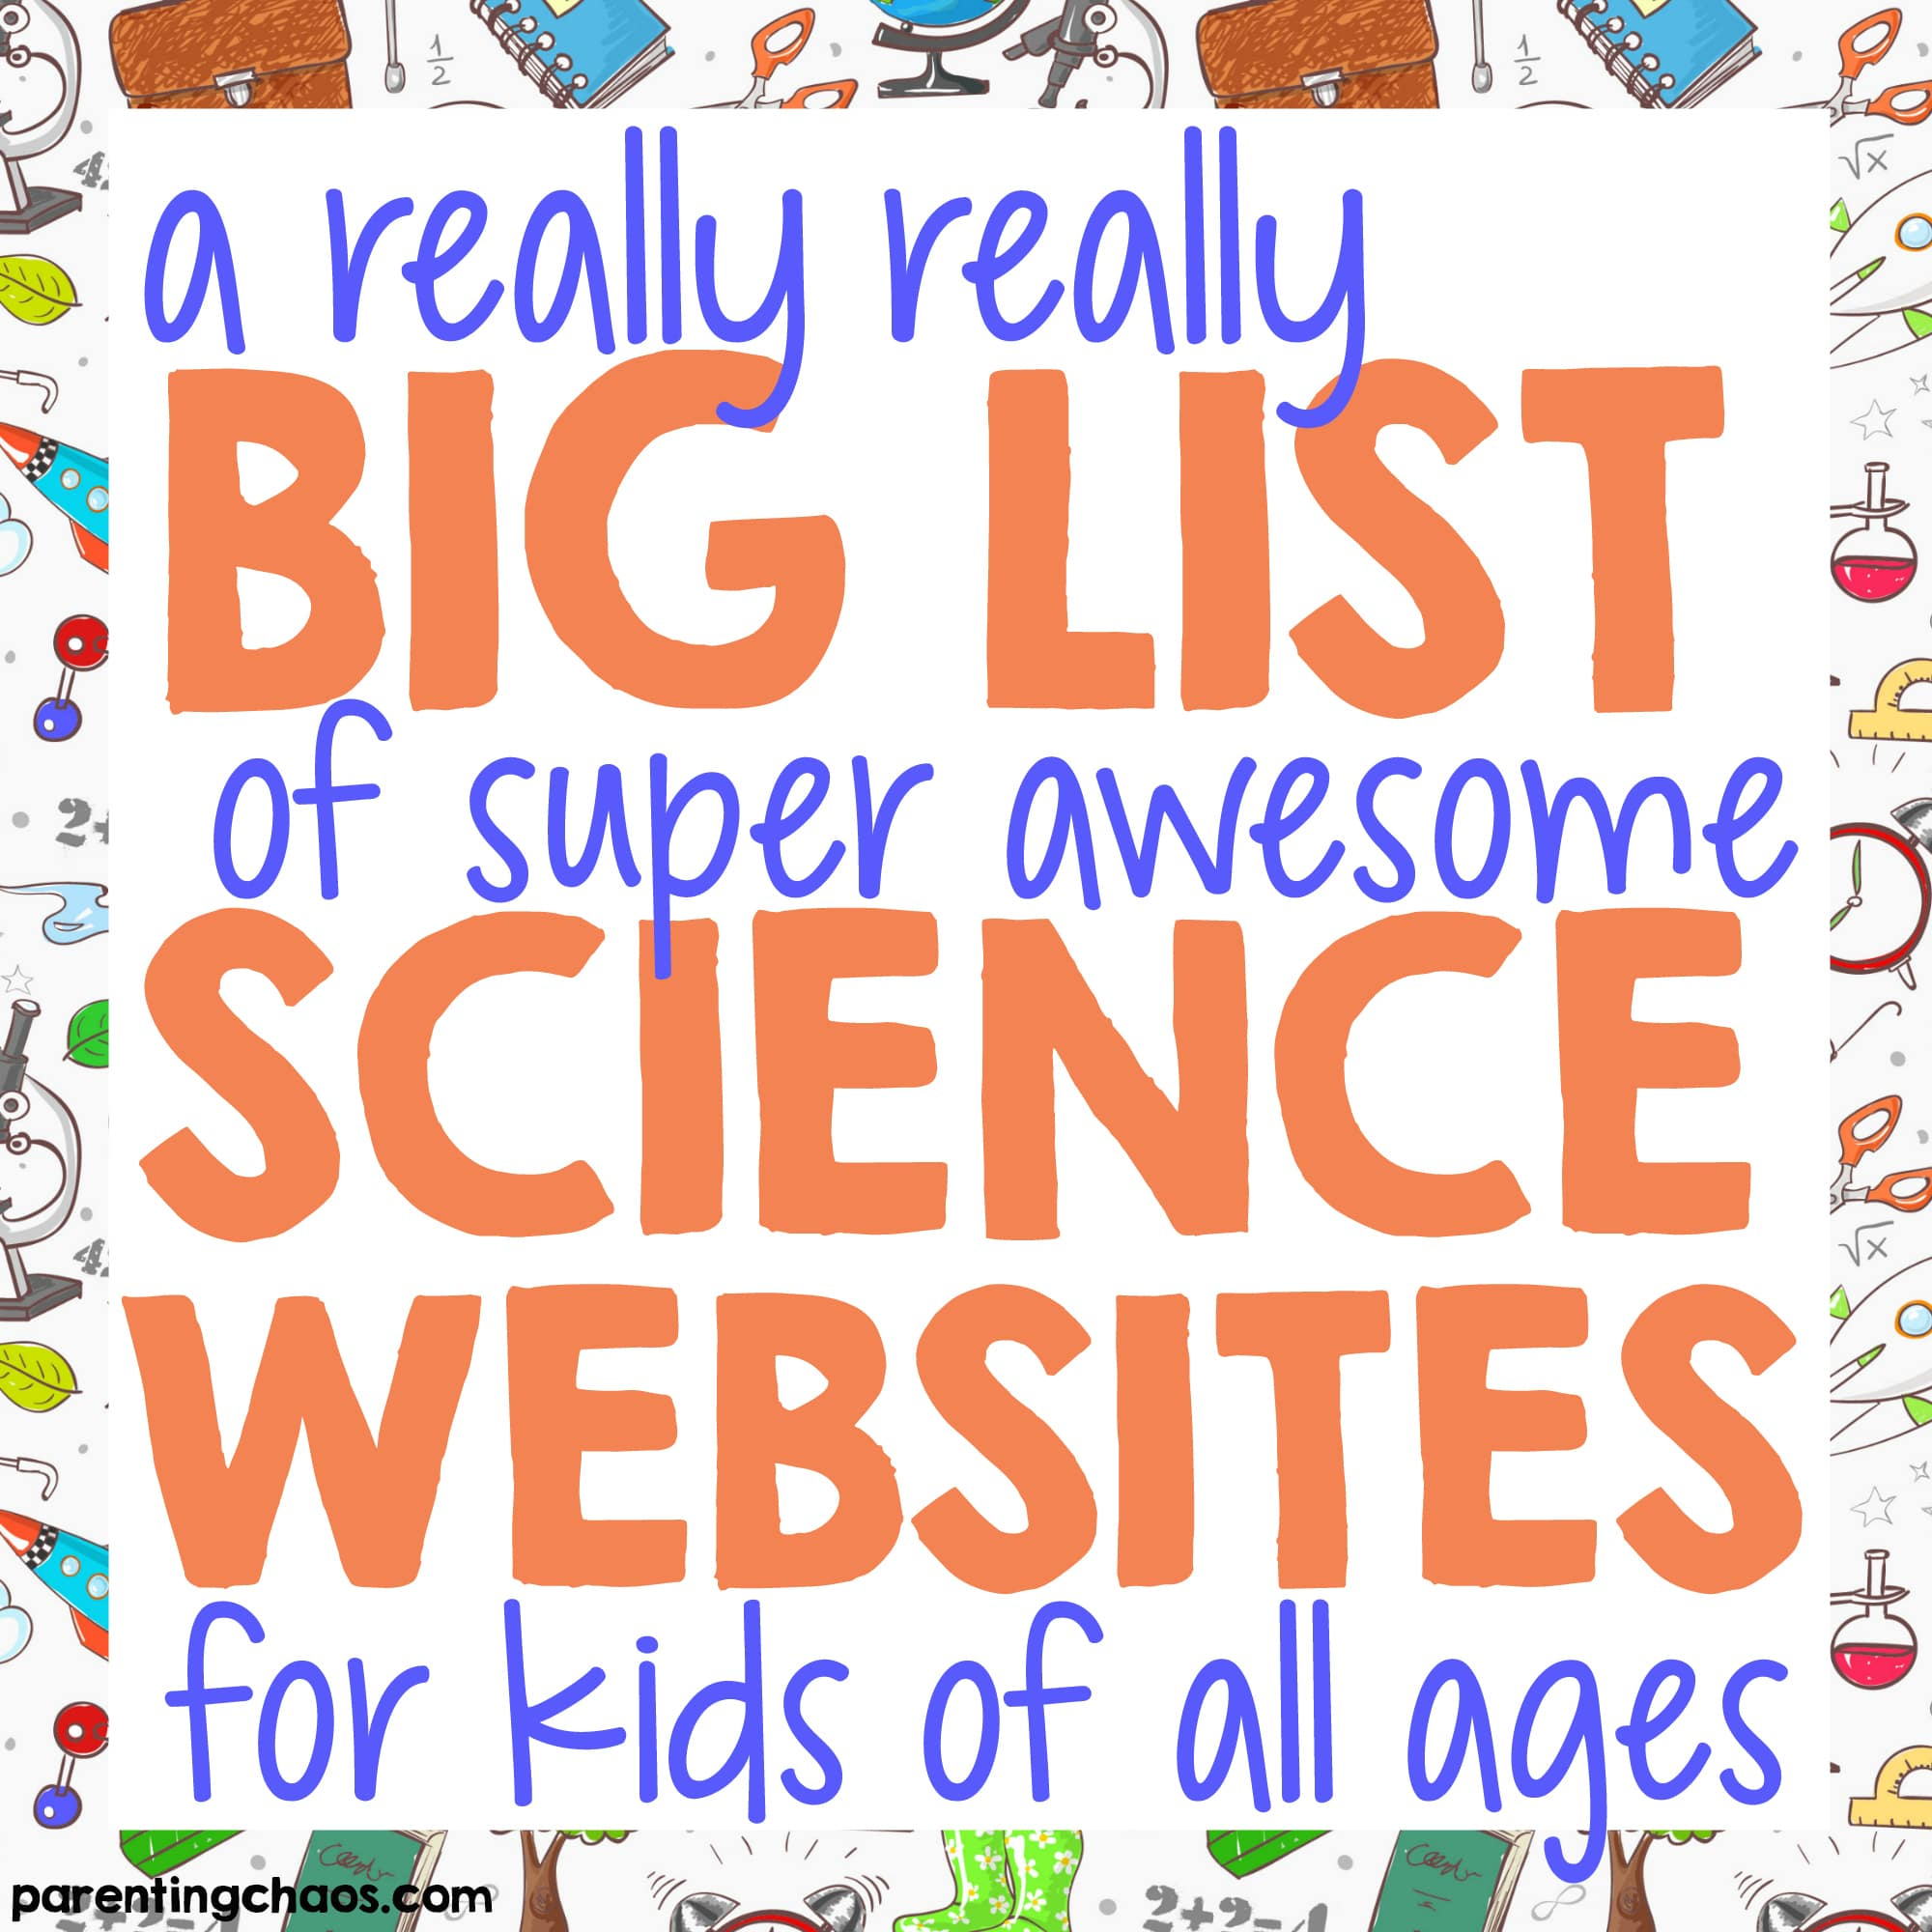 A Really Big List of Free Science Websites for Kids